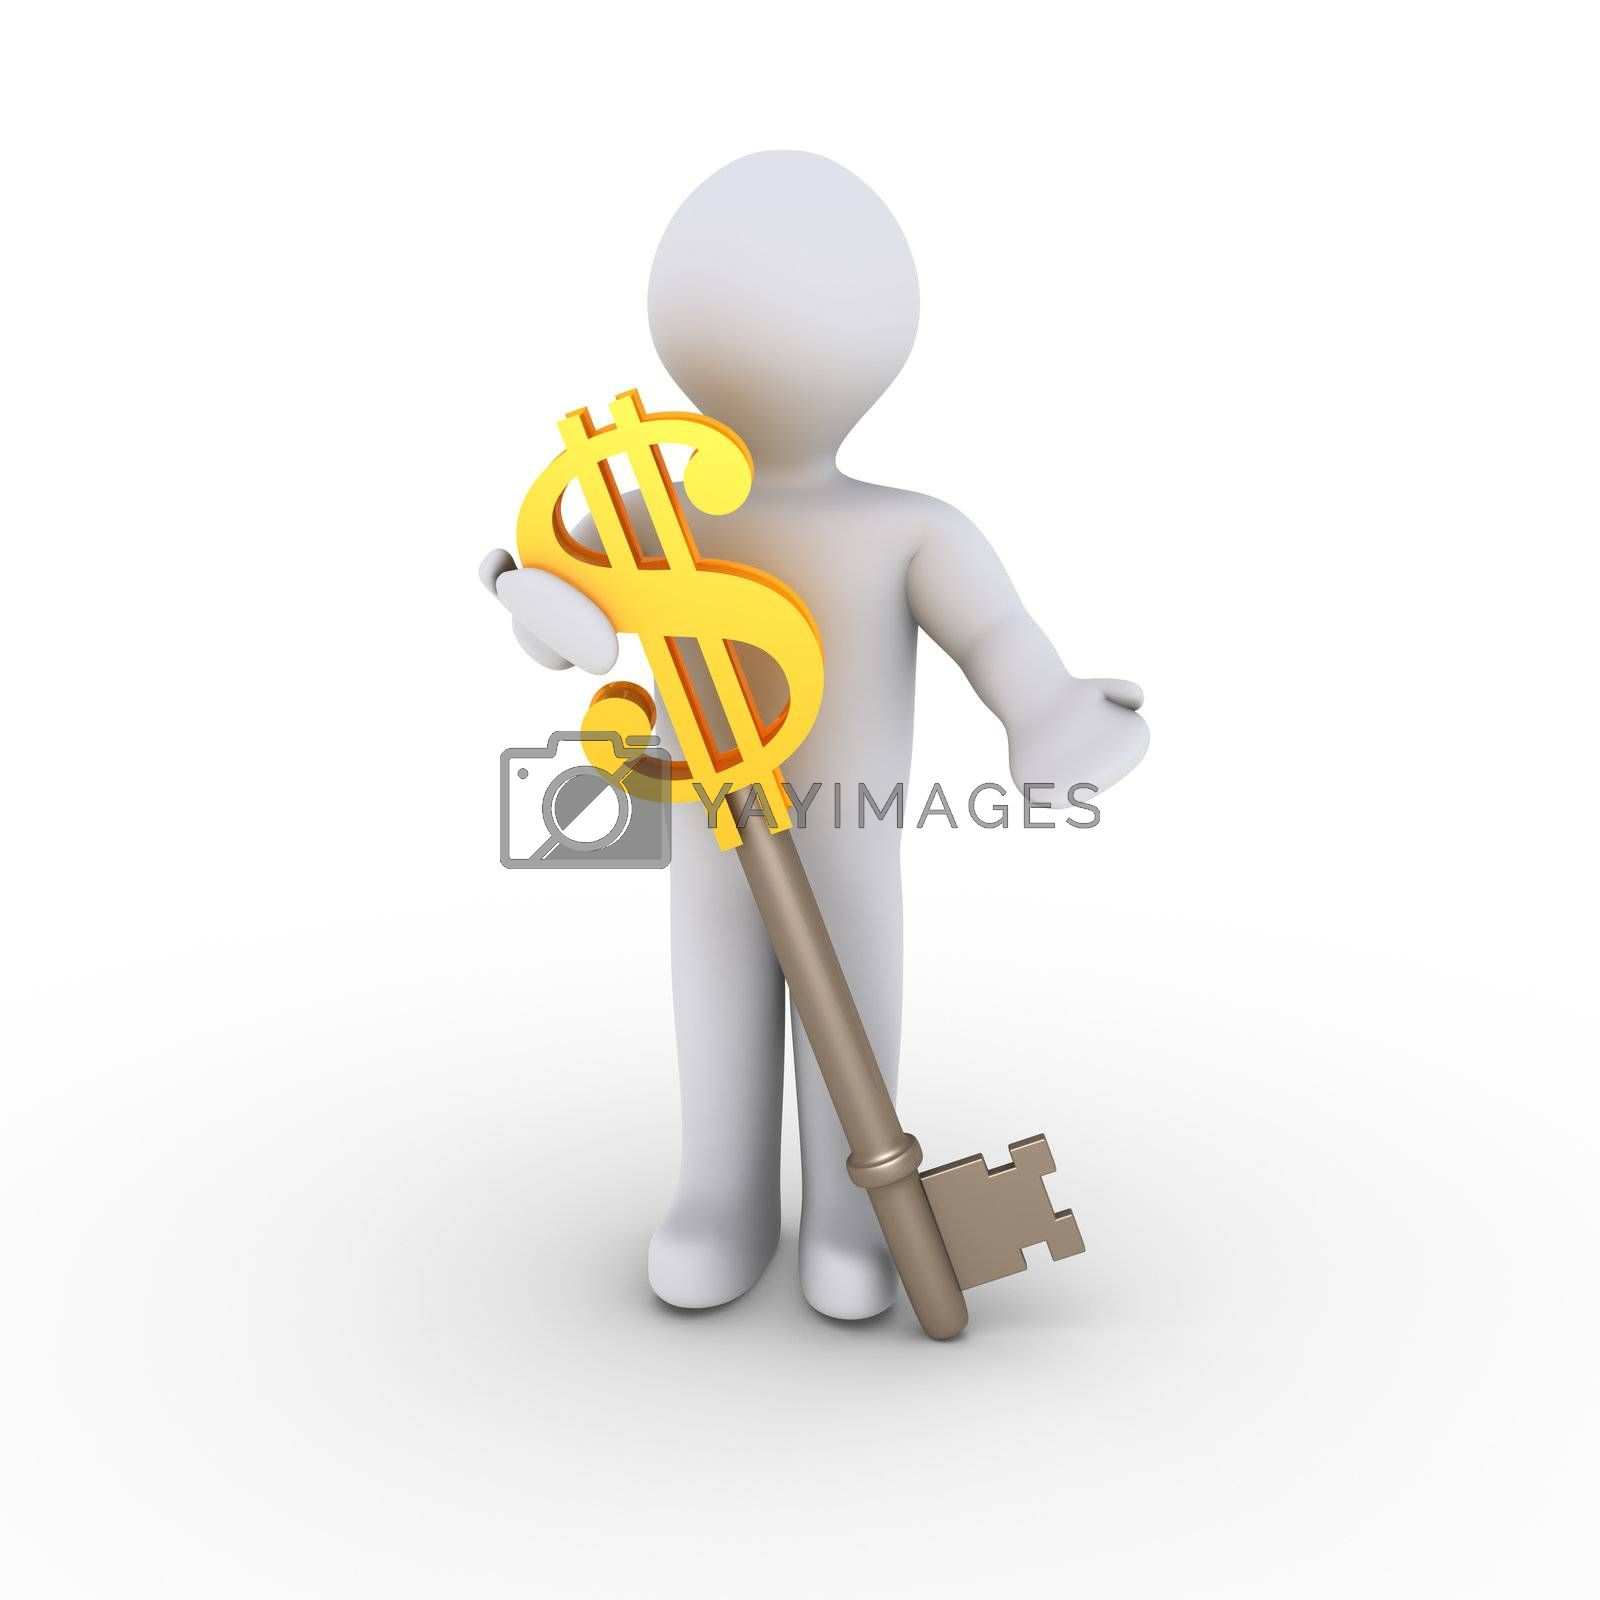 3d person holding a key which has a dollar symbol